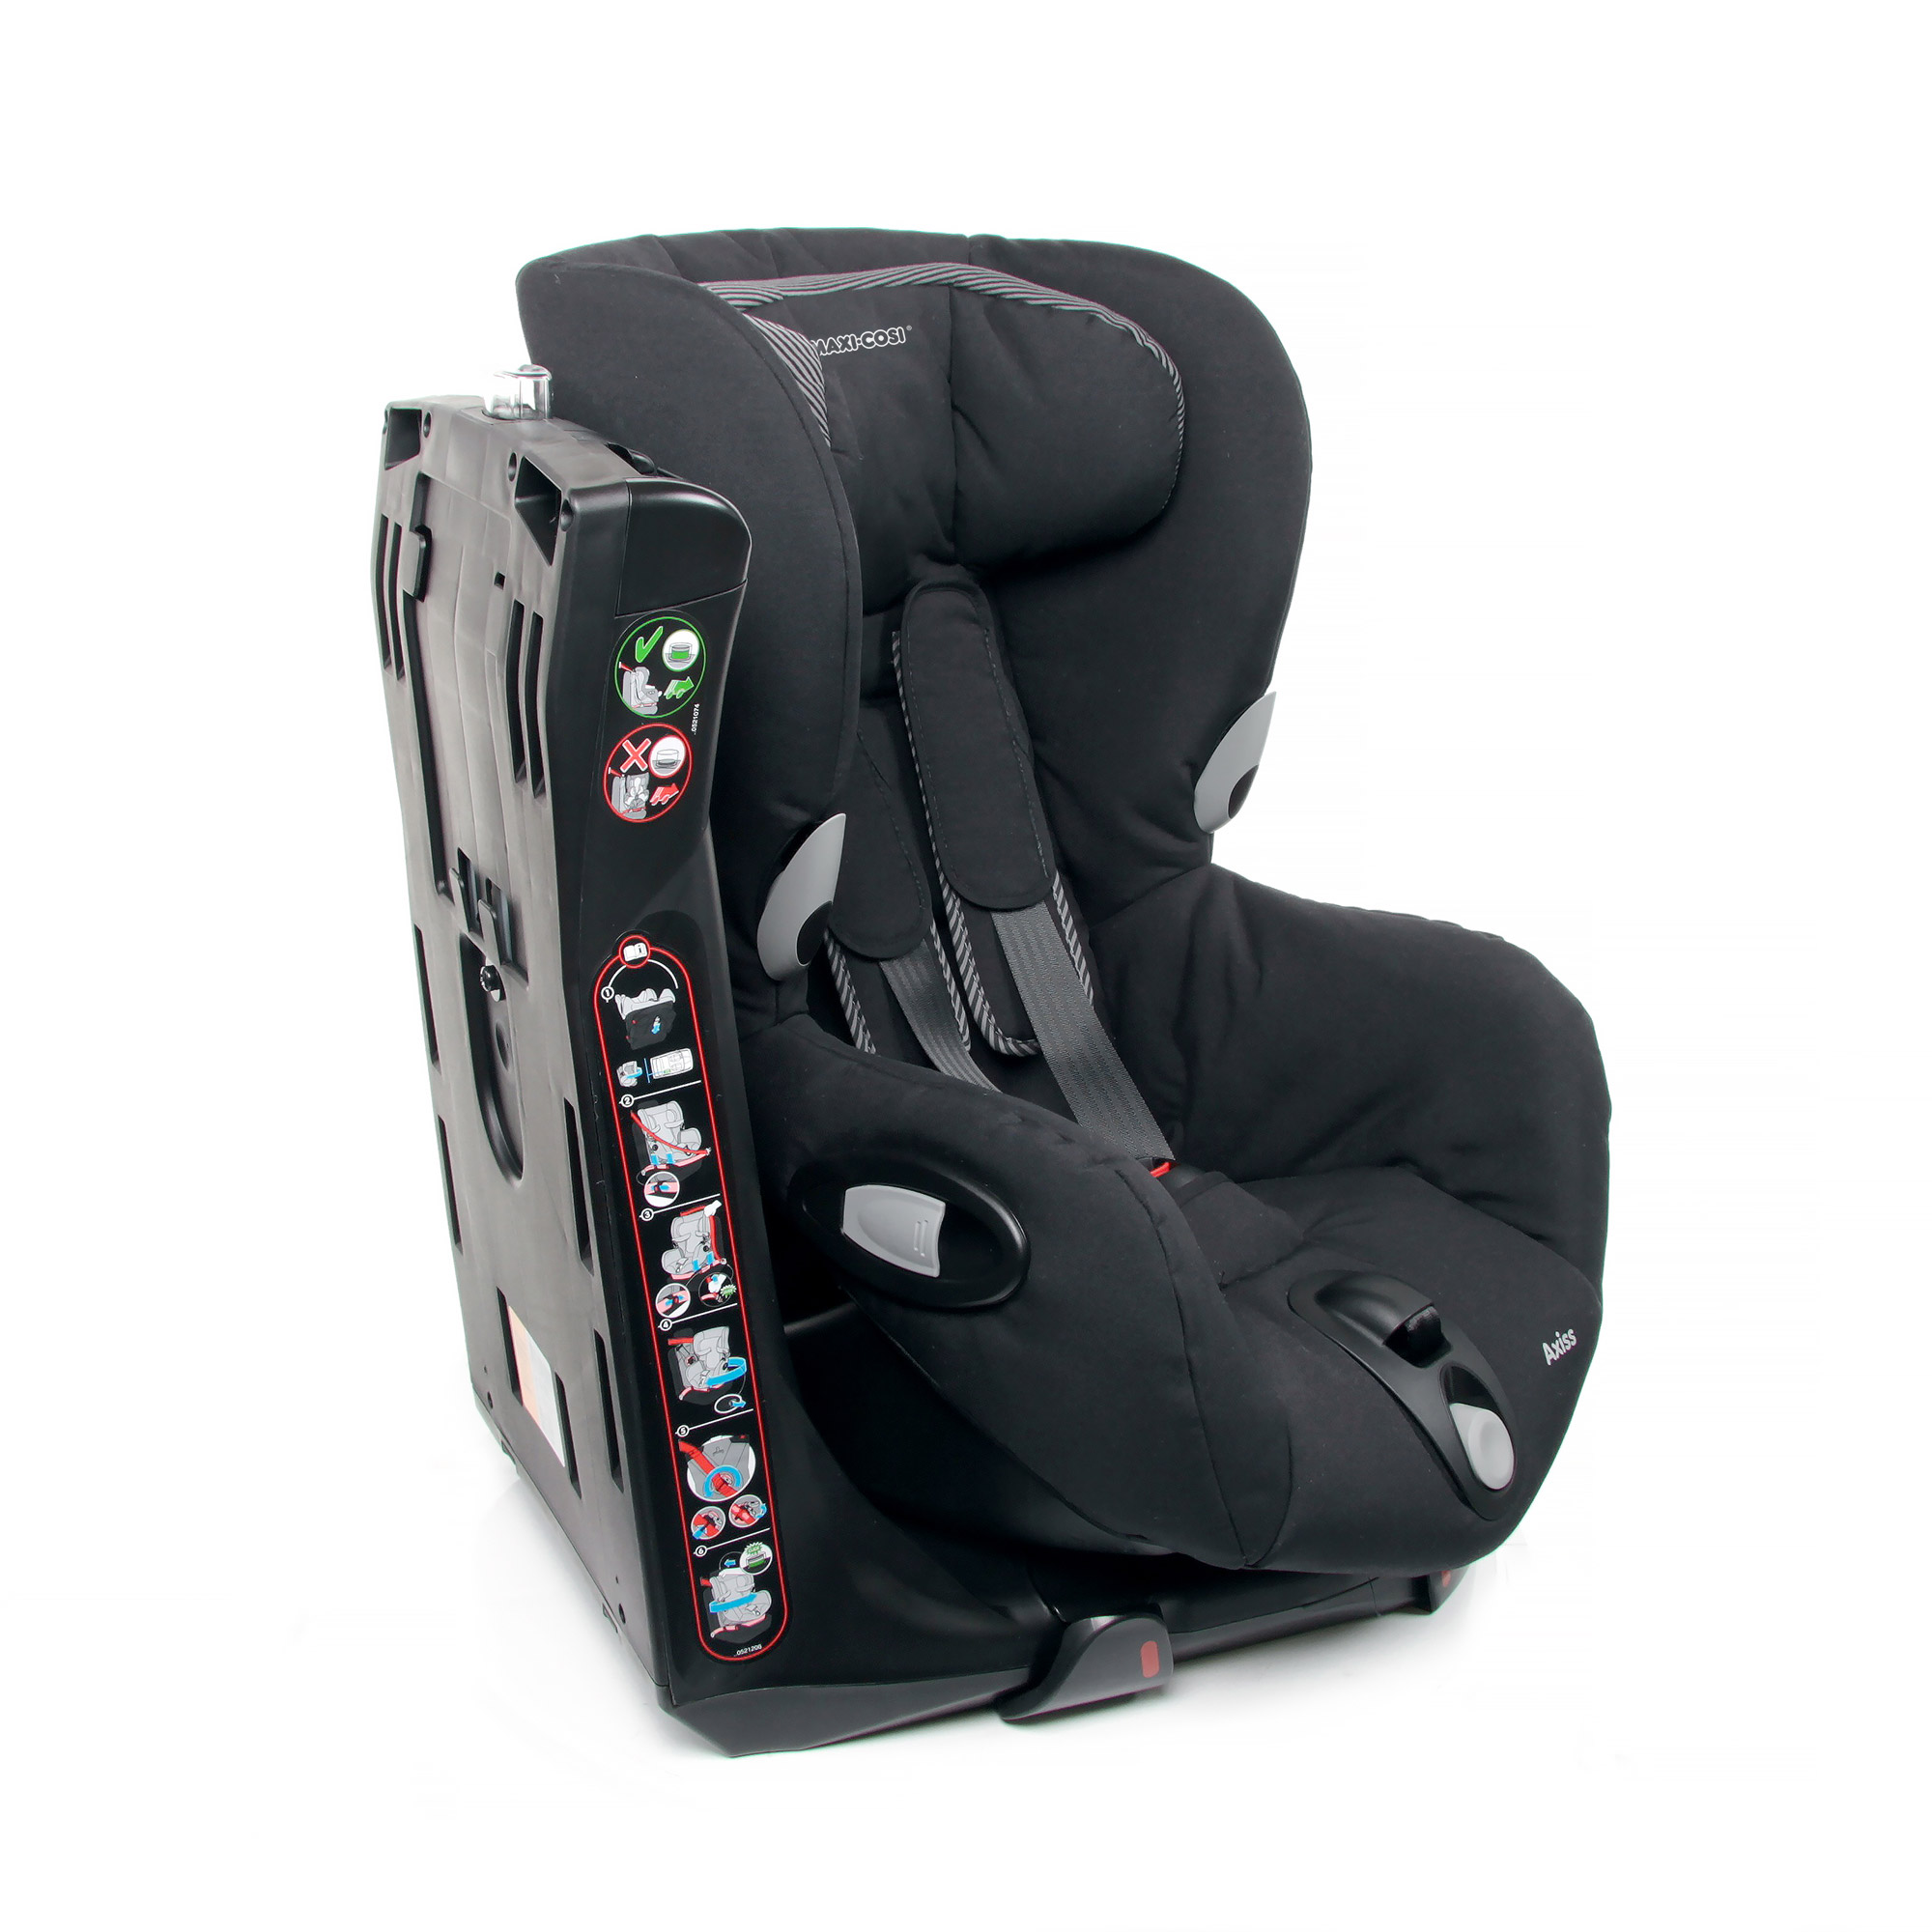 maxi cosi child car seat axiss 2017 black raven buy at kidsroom car seats. Black Bedroom Furniture Sets. Home Design Ideas